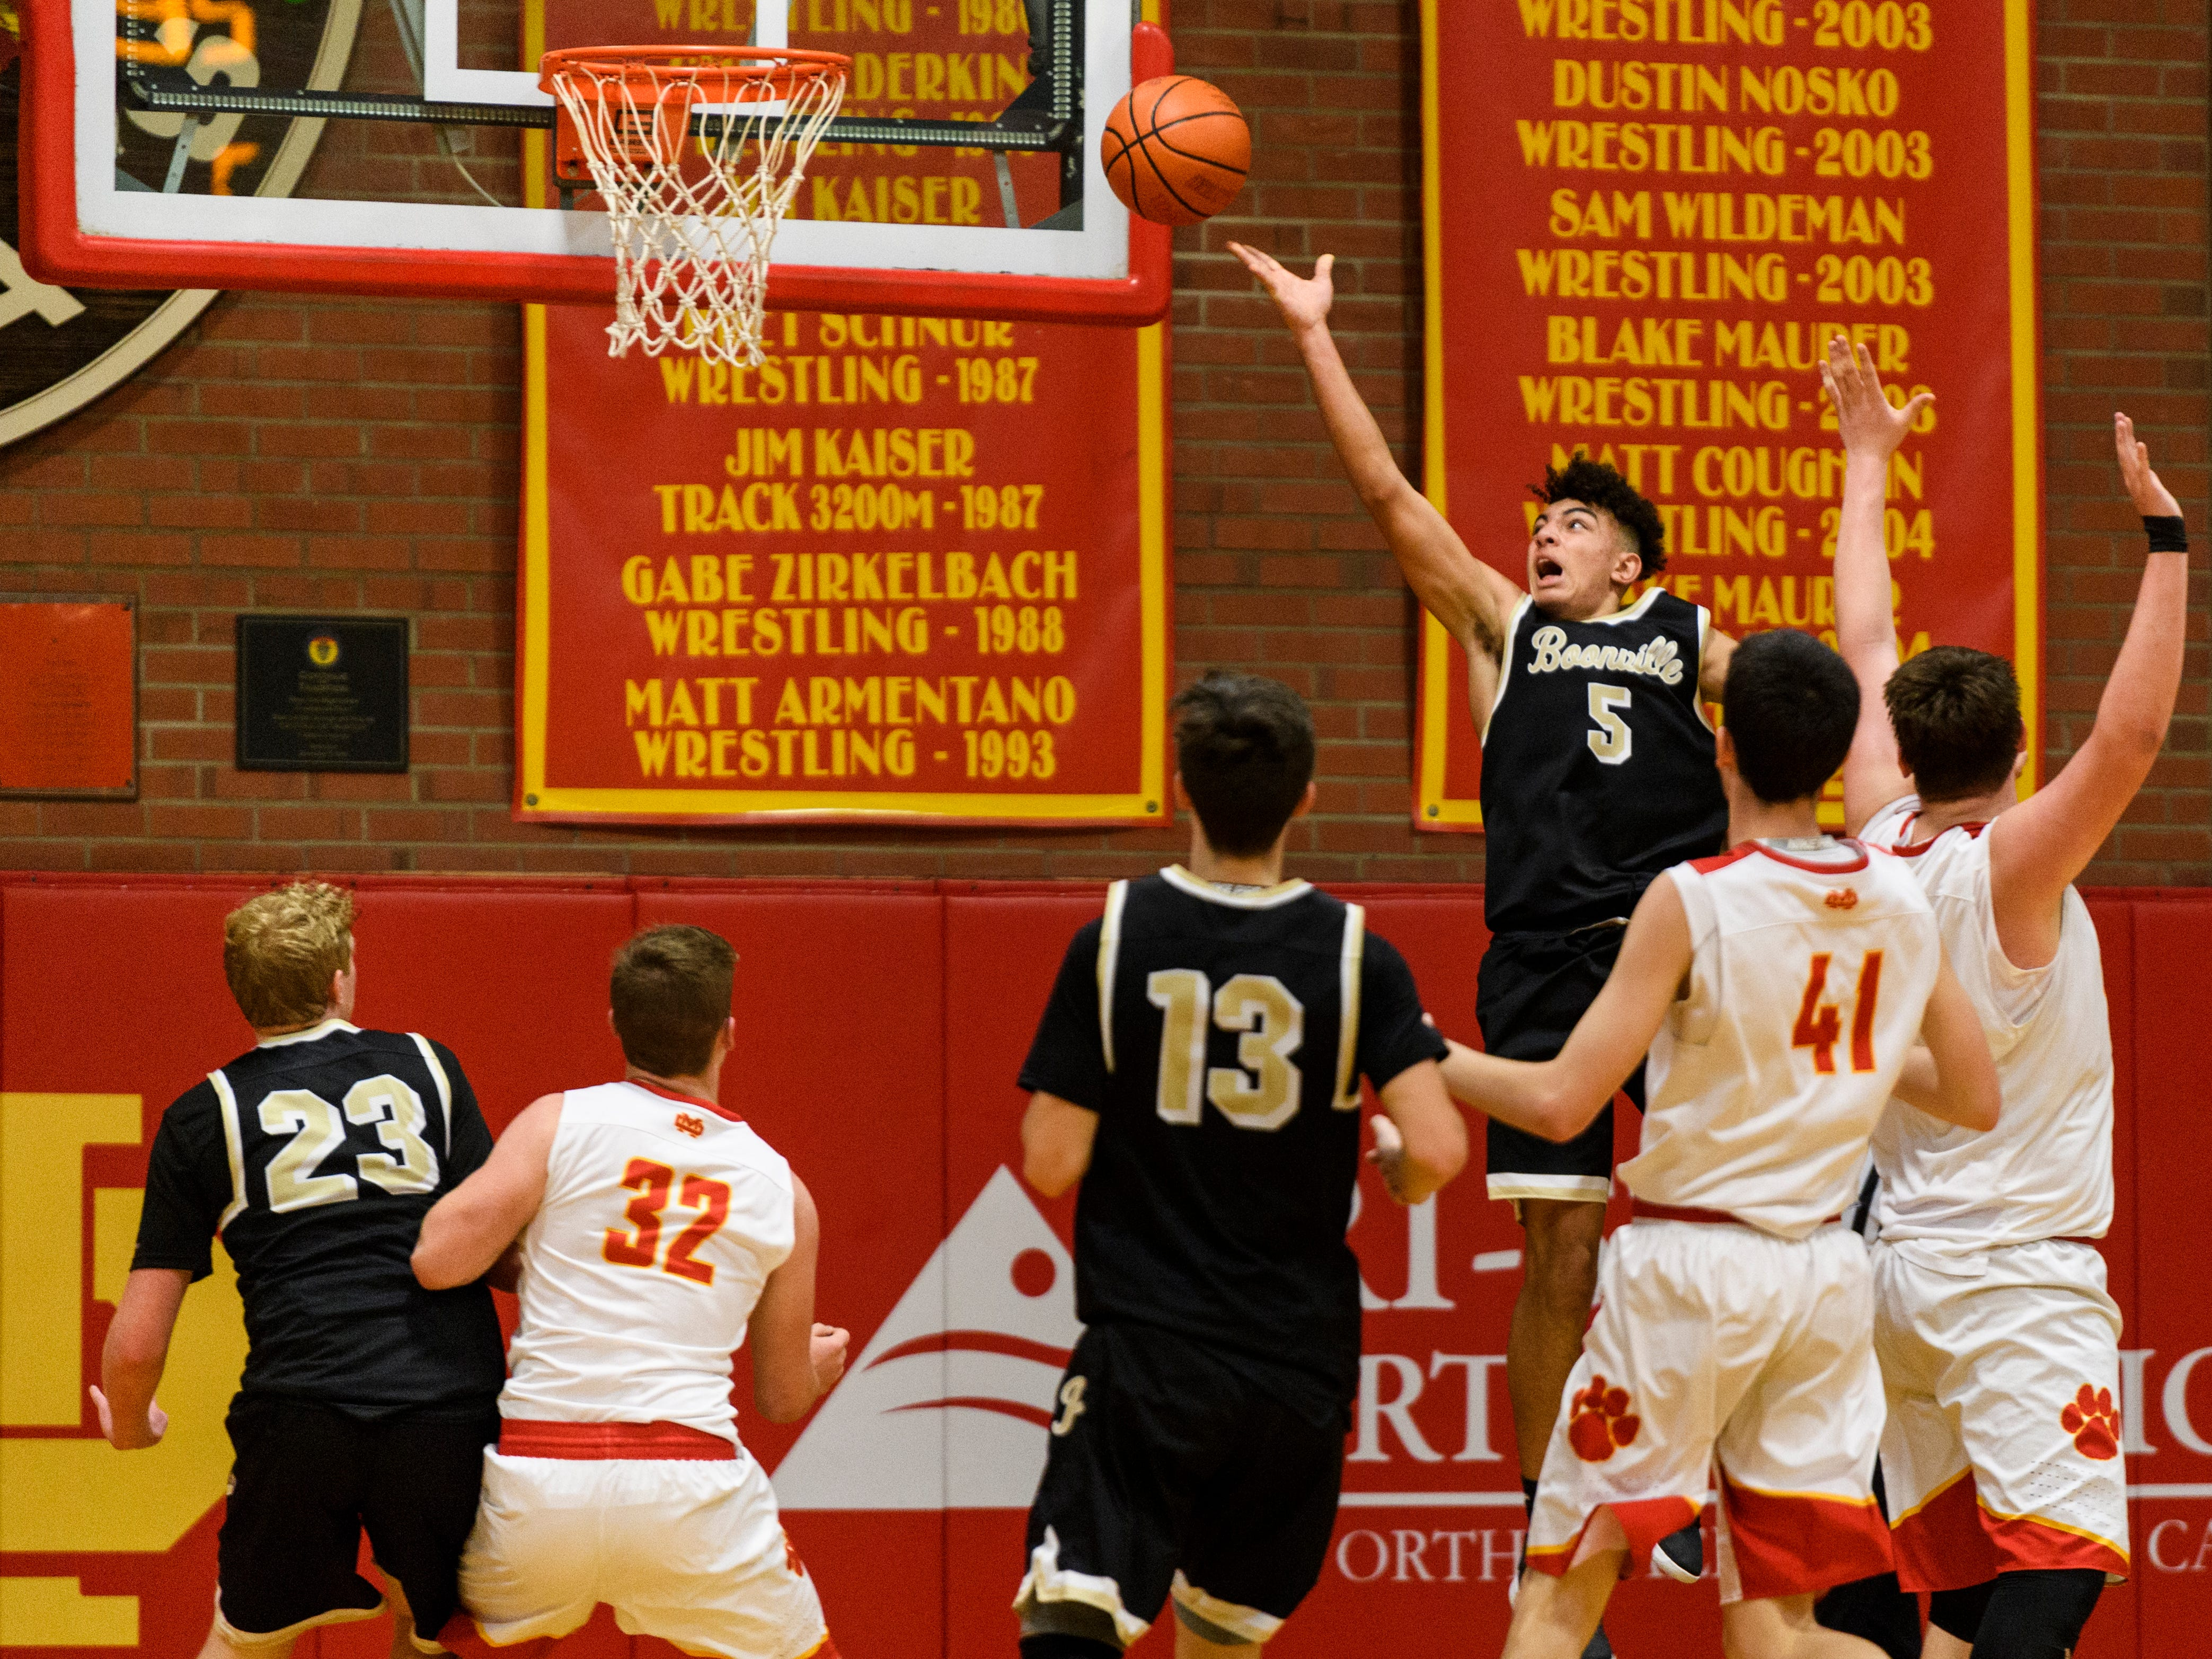 Boonville's Devin Mockobee (5) throws the ball up during a shot attempt in the second quarter against the Mater Dei Wildcats at Mater Dei High School in Evansville, Ind., Saturday, Jan. 5, 2019. The Wildcats defeated the Pioneers, 93-65.